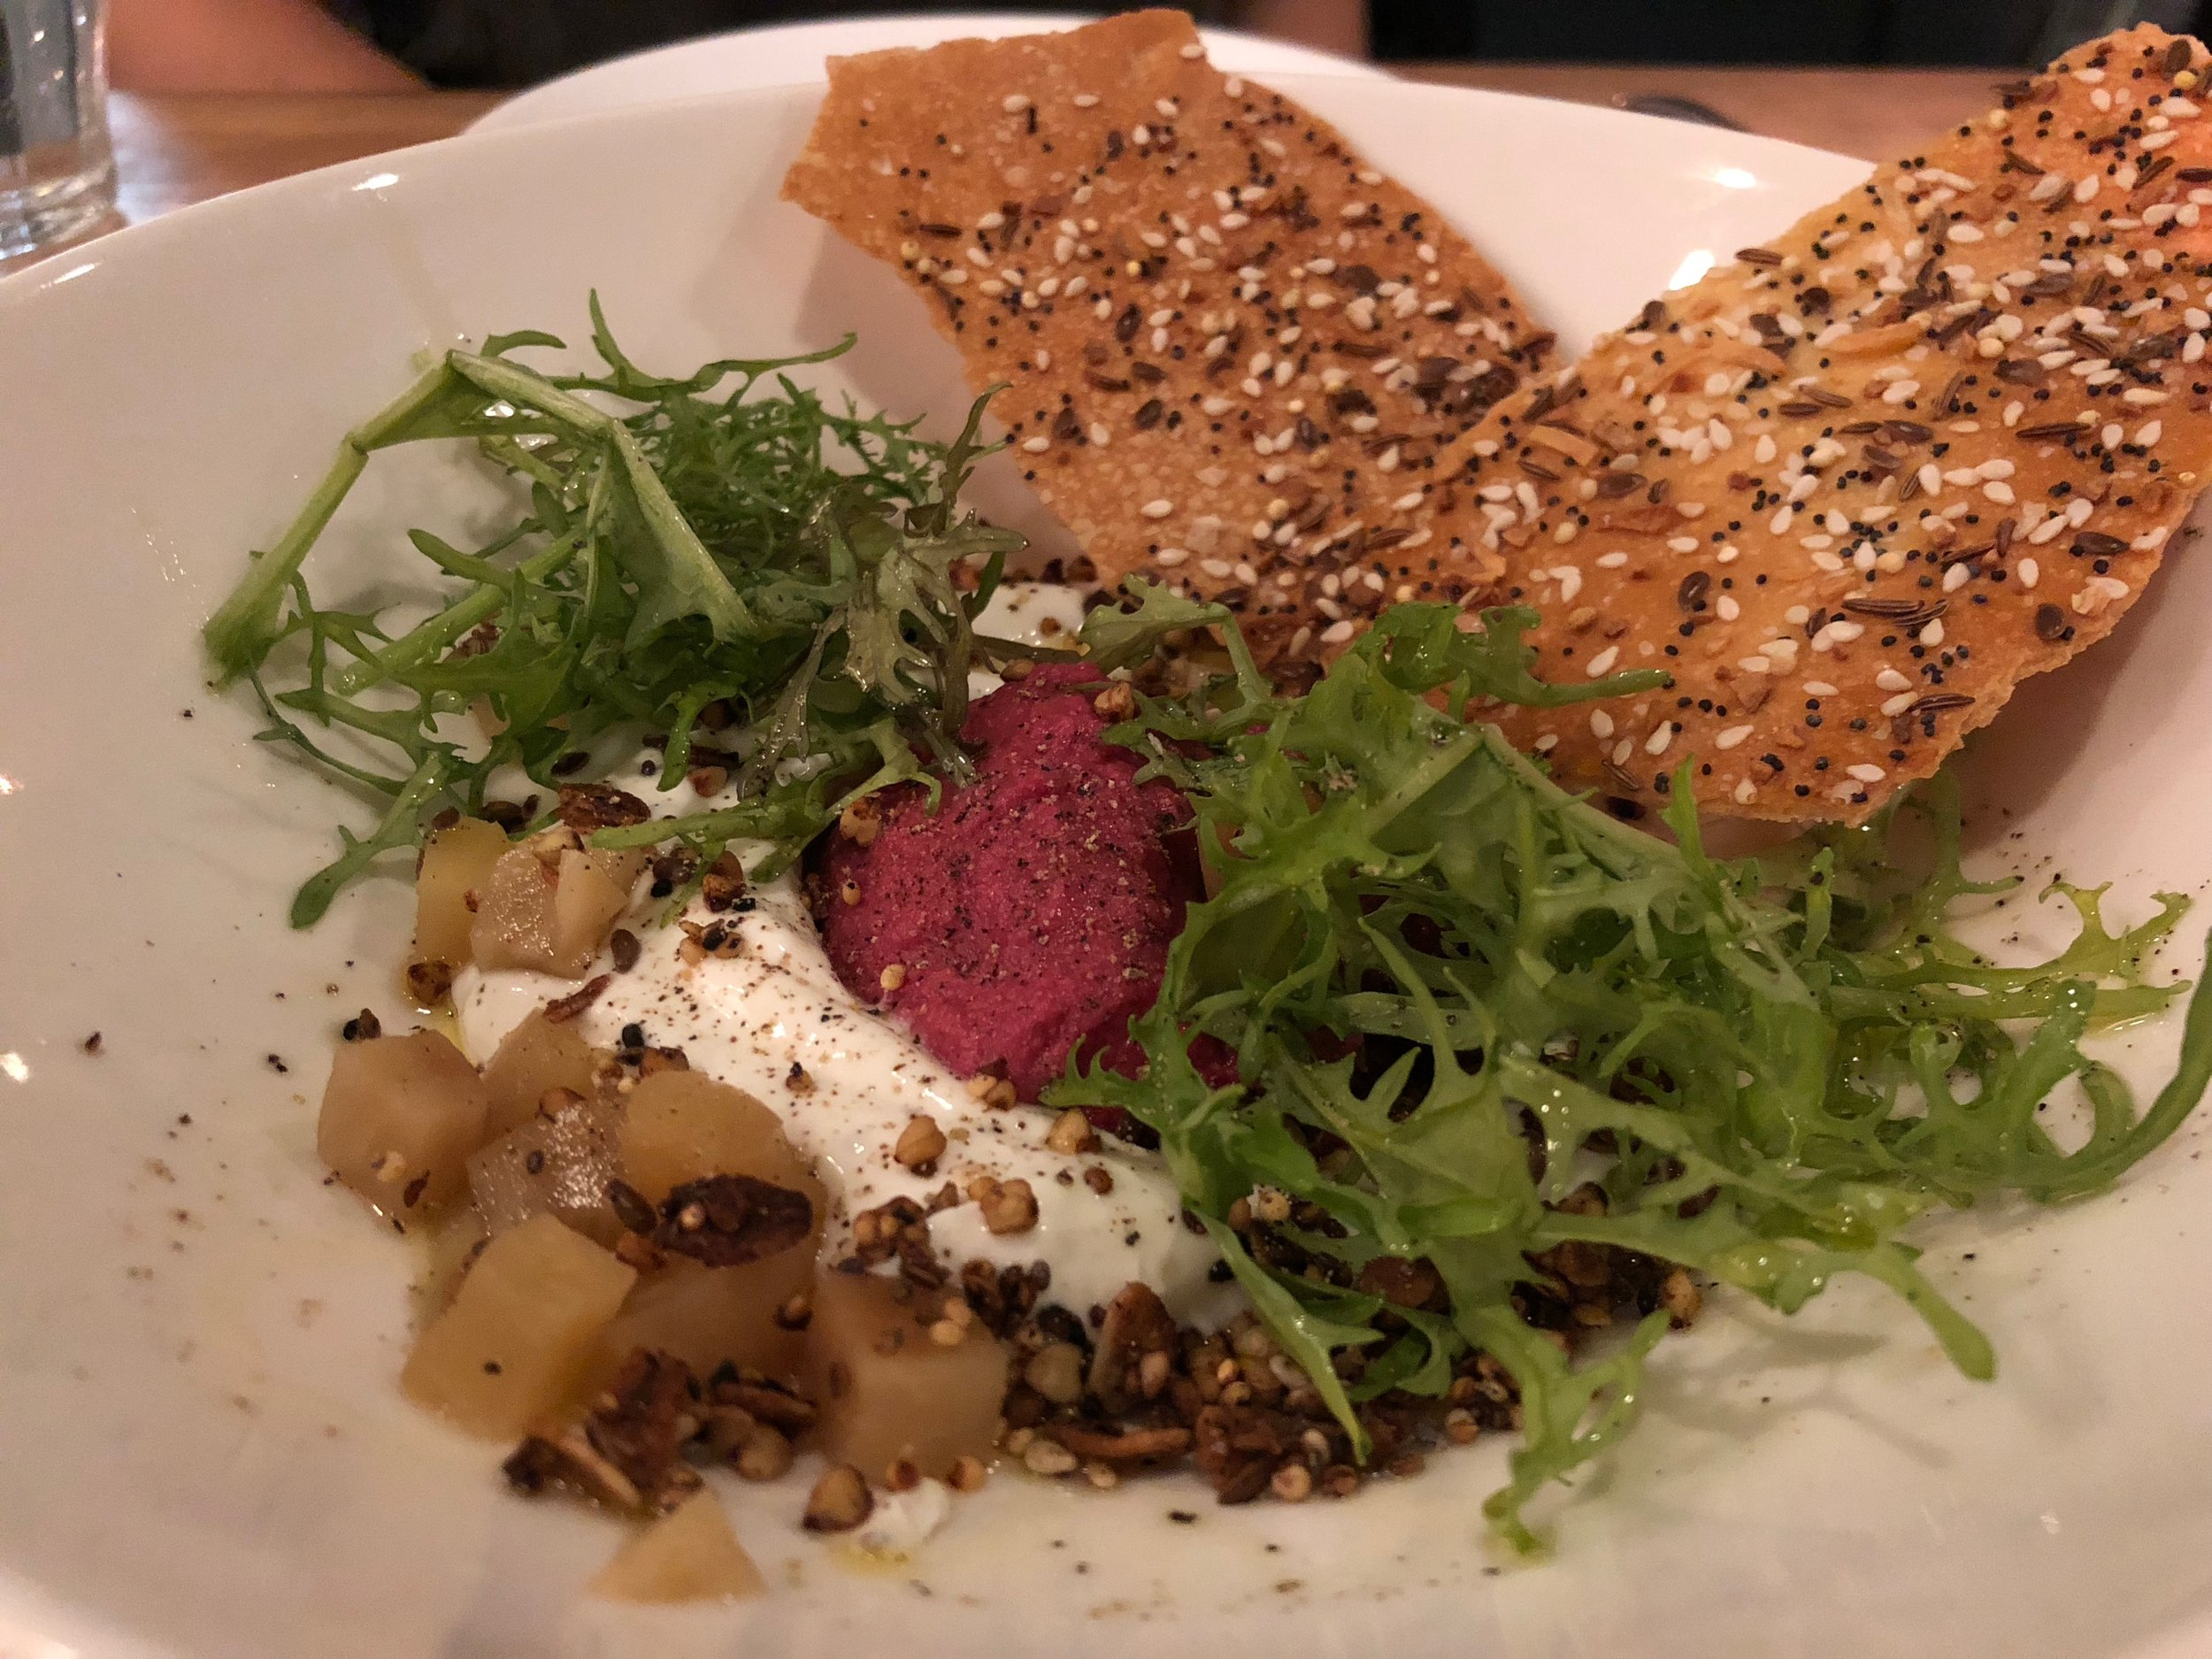 Labneh - beet hummus, millet crunch, everything crackerWe loved this dish. Our only complaint was that we needed maybe seven more crackers? Kthanxbai.